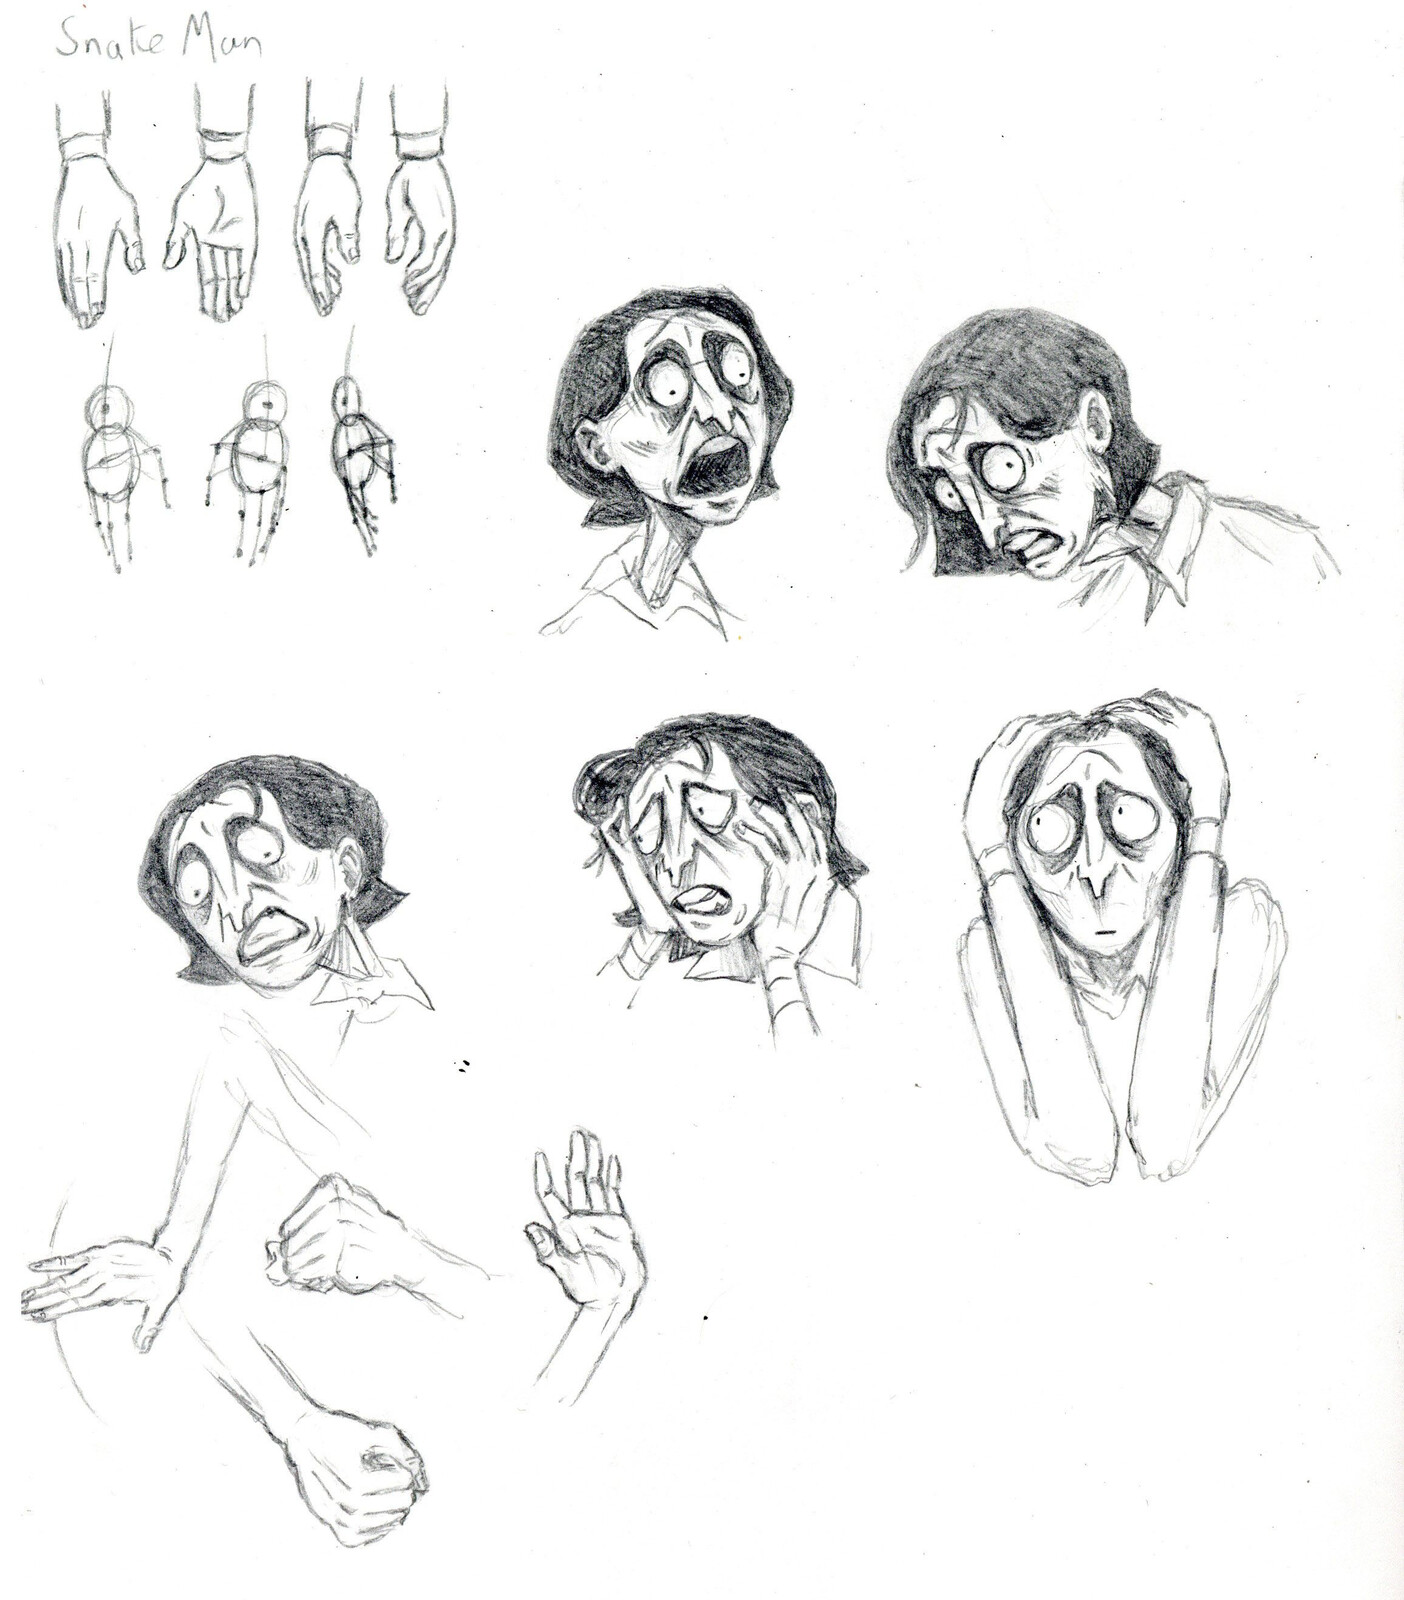 'Snake man' hands and expressions.